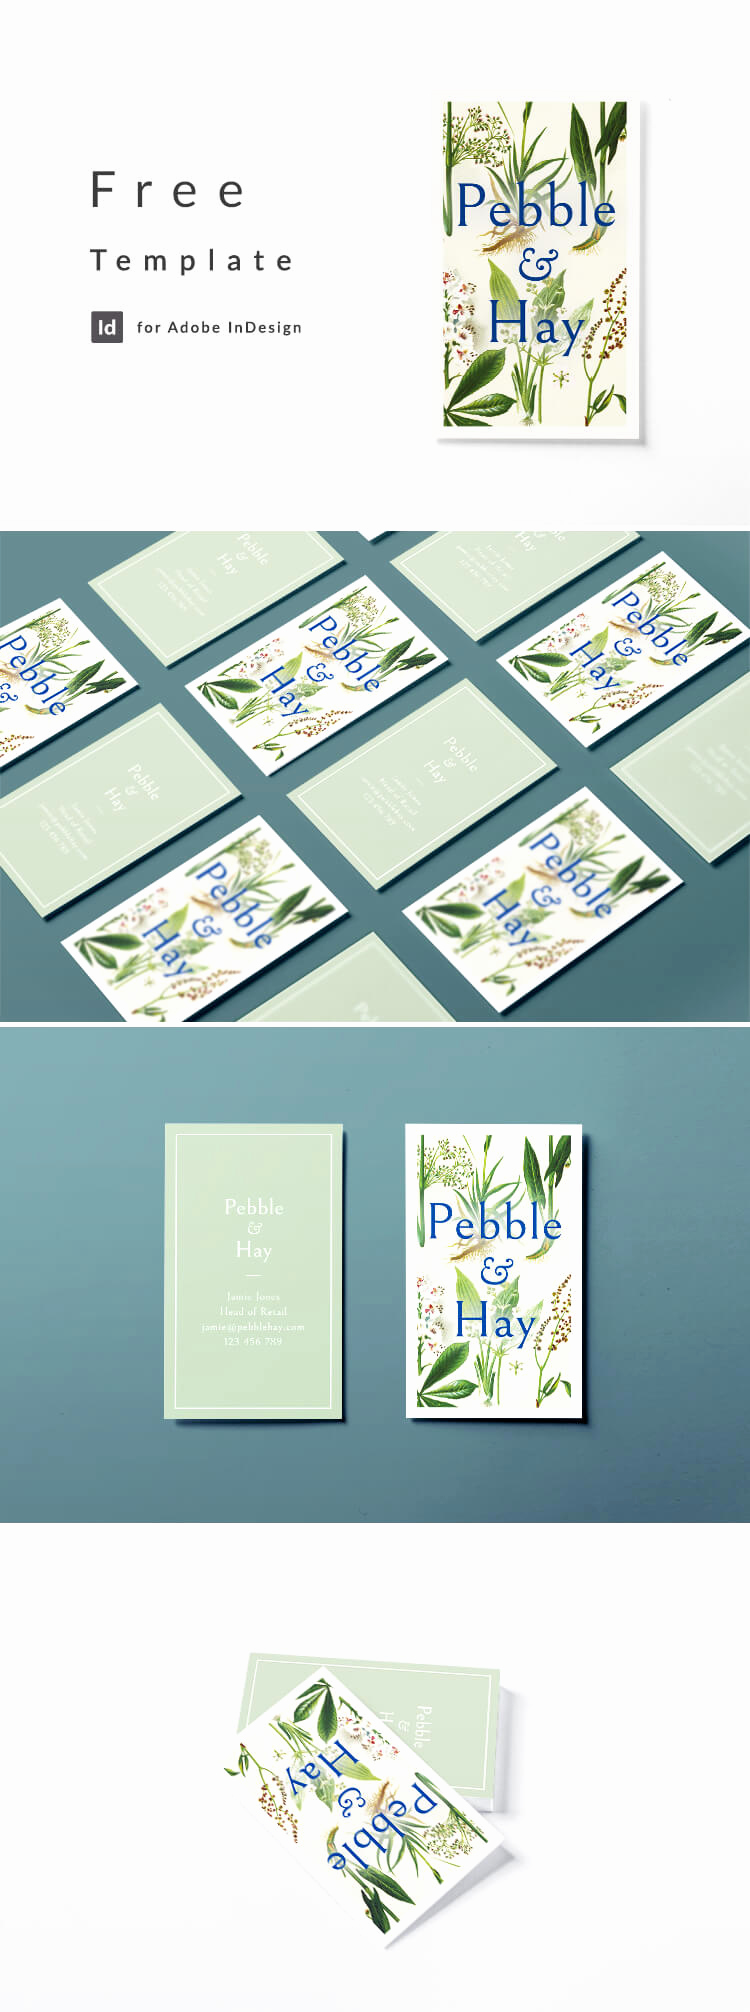 Indesign Business Cards Templates Inspirational Vintage Business Card Template for Indesign